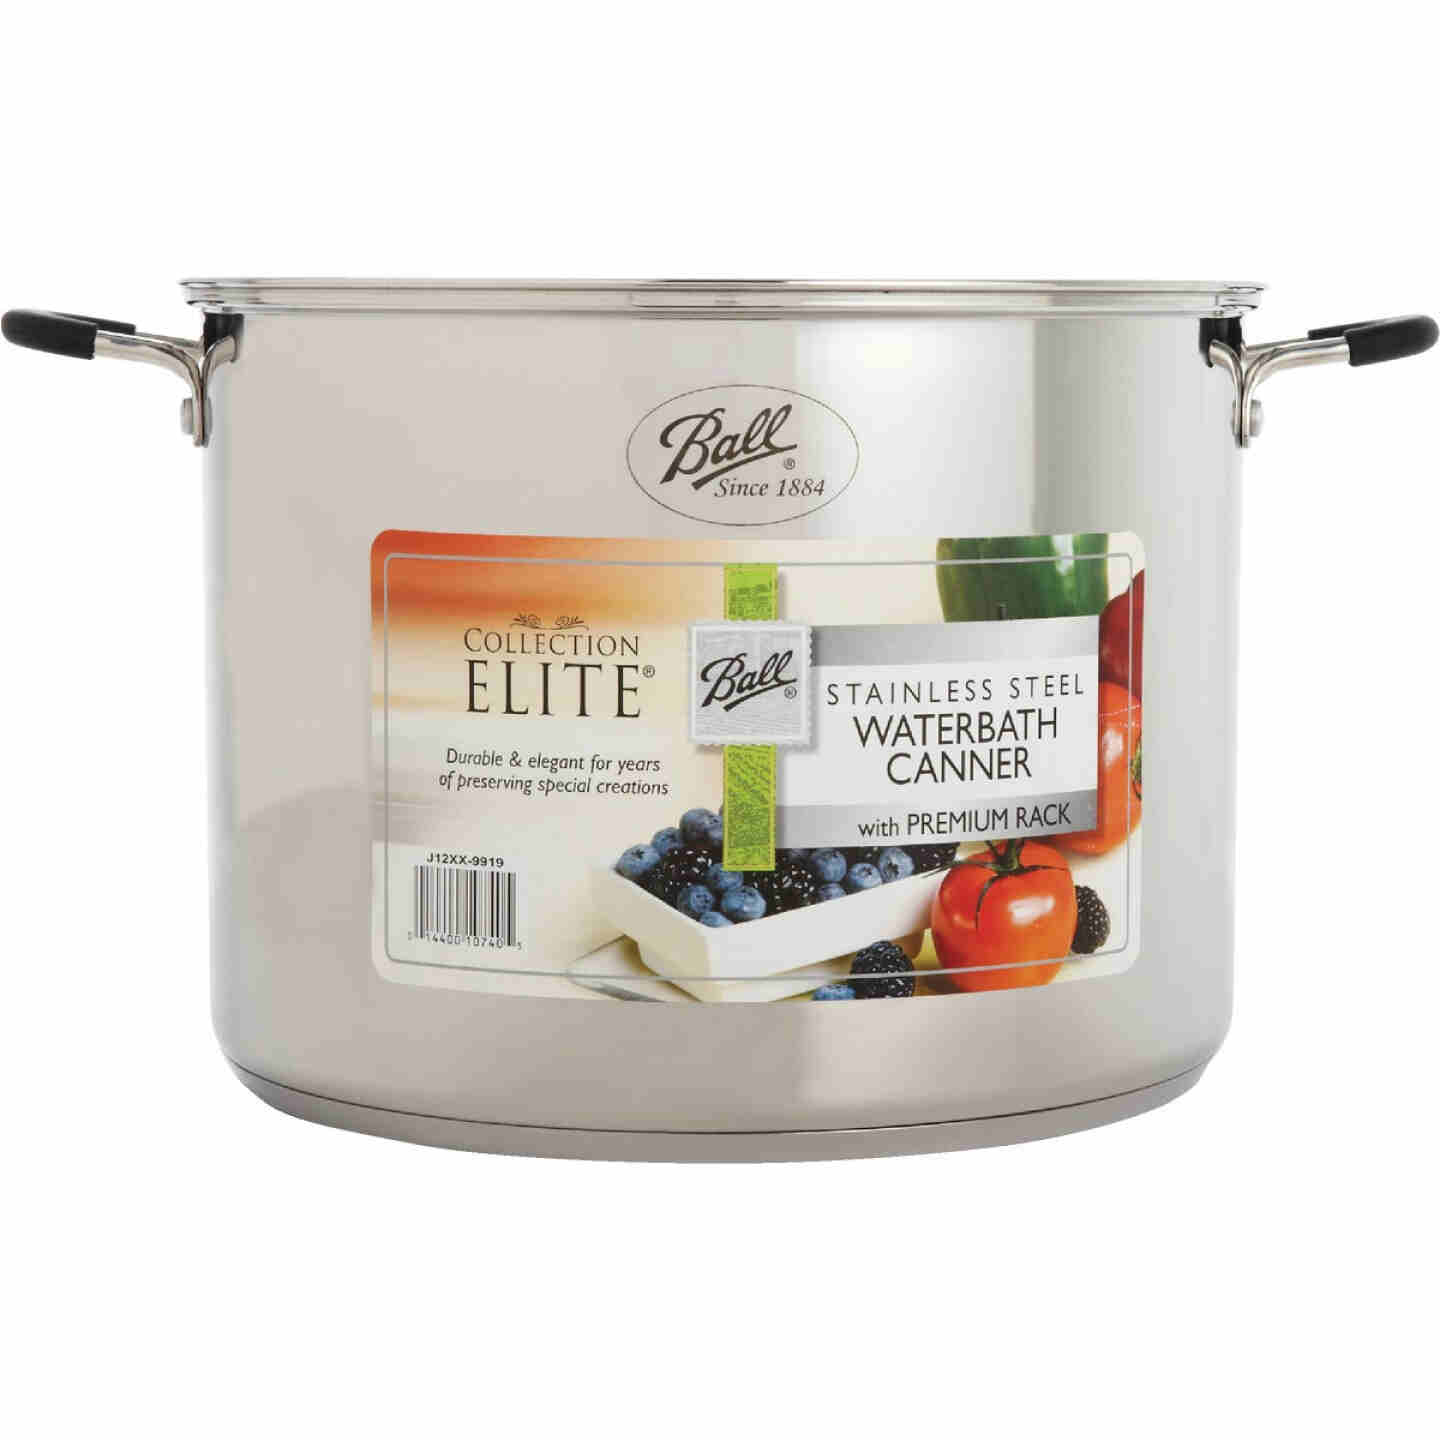 Ball Collection Elite 21 Qt. Stainless Steel Canner Image 2